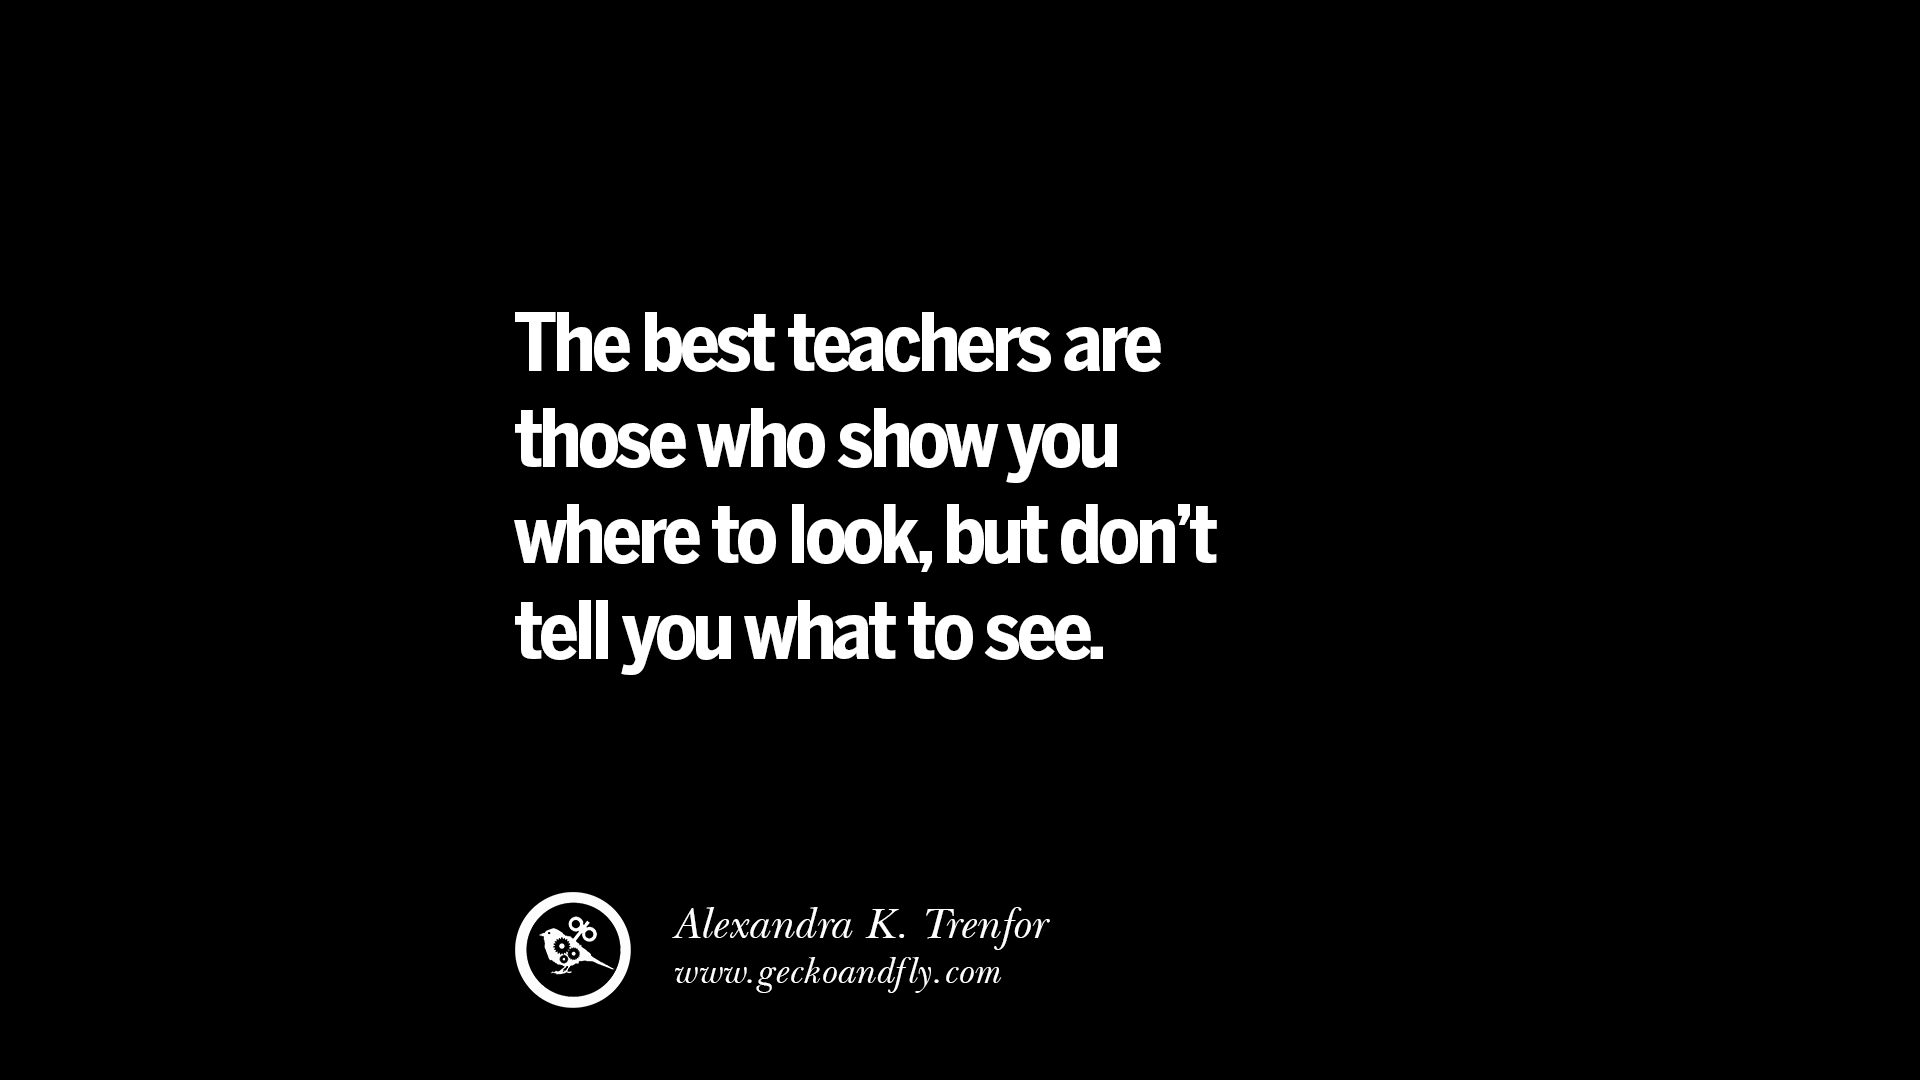 31 Quotes On Teaching Better And Make Learning More Effective